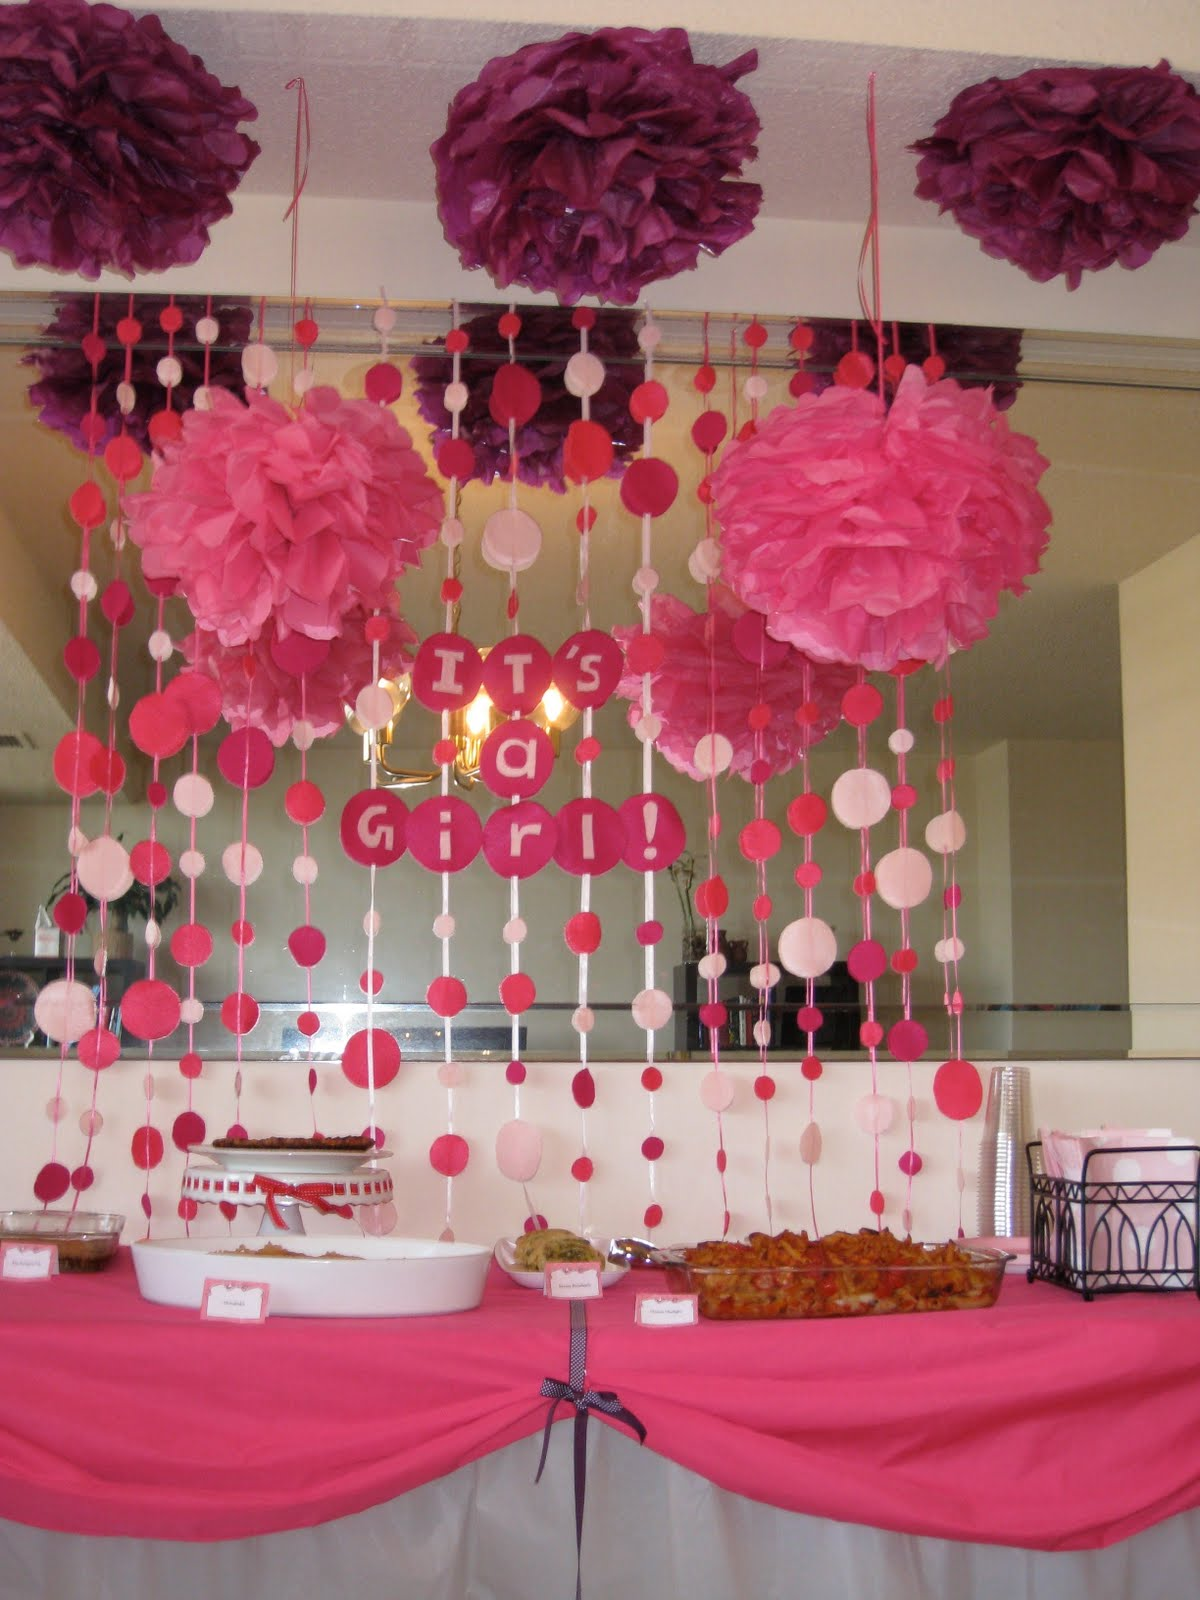 Baby shower food ideas baby shower ideas for a girl for Baby showers pictures for decoration